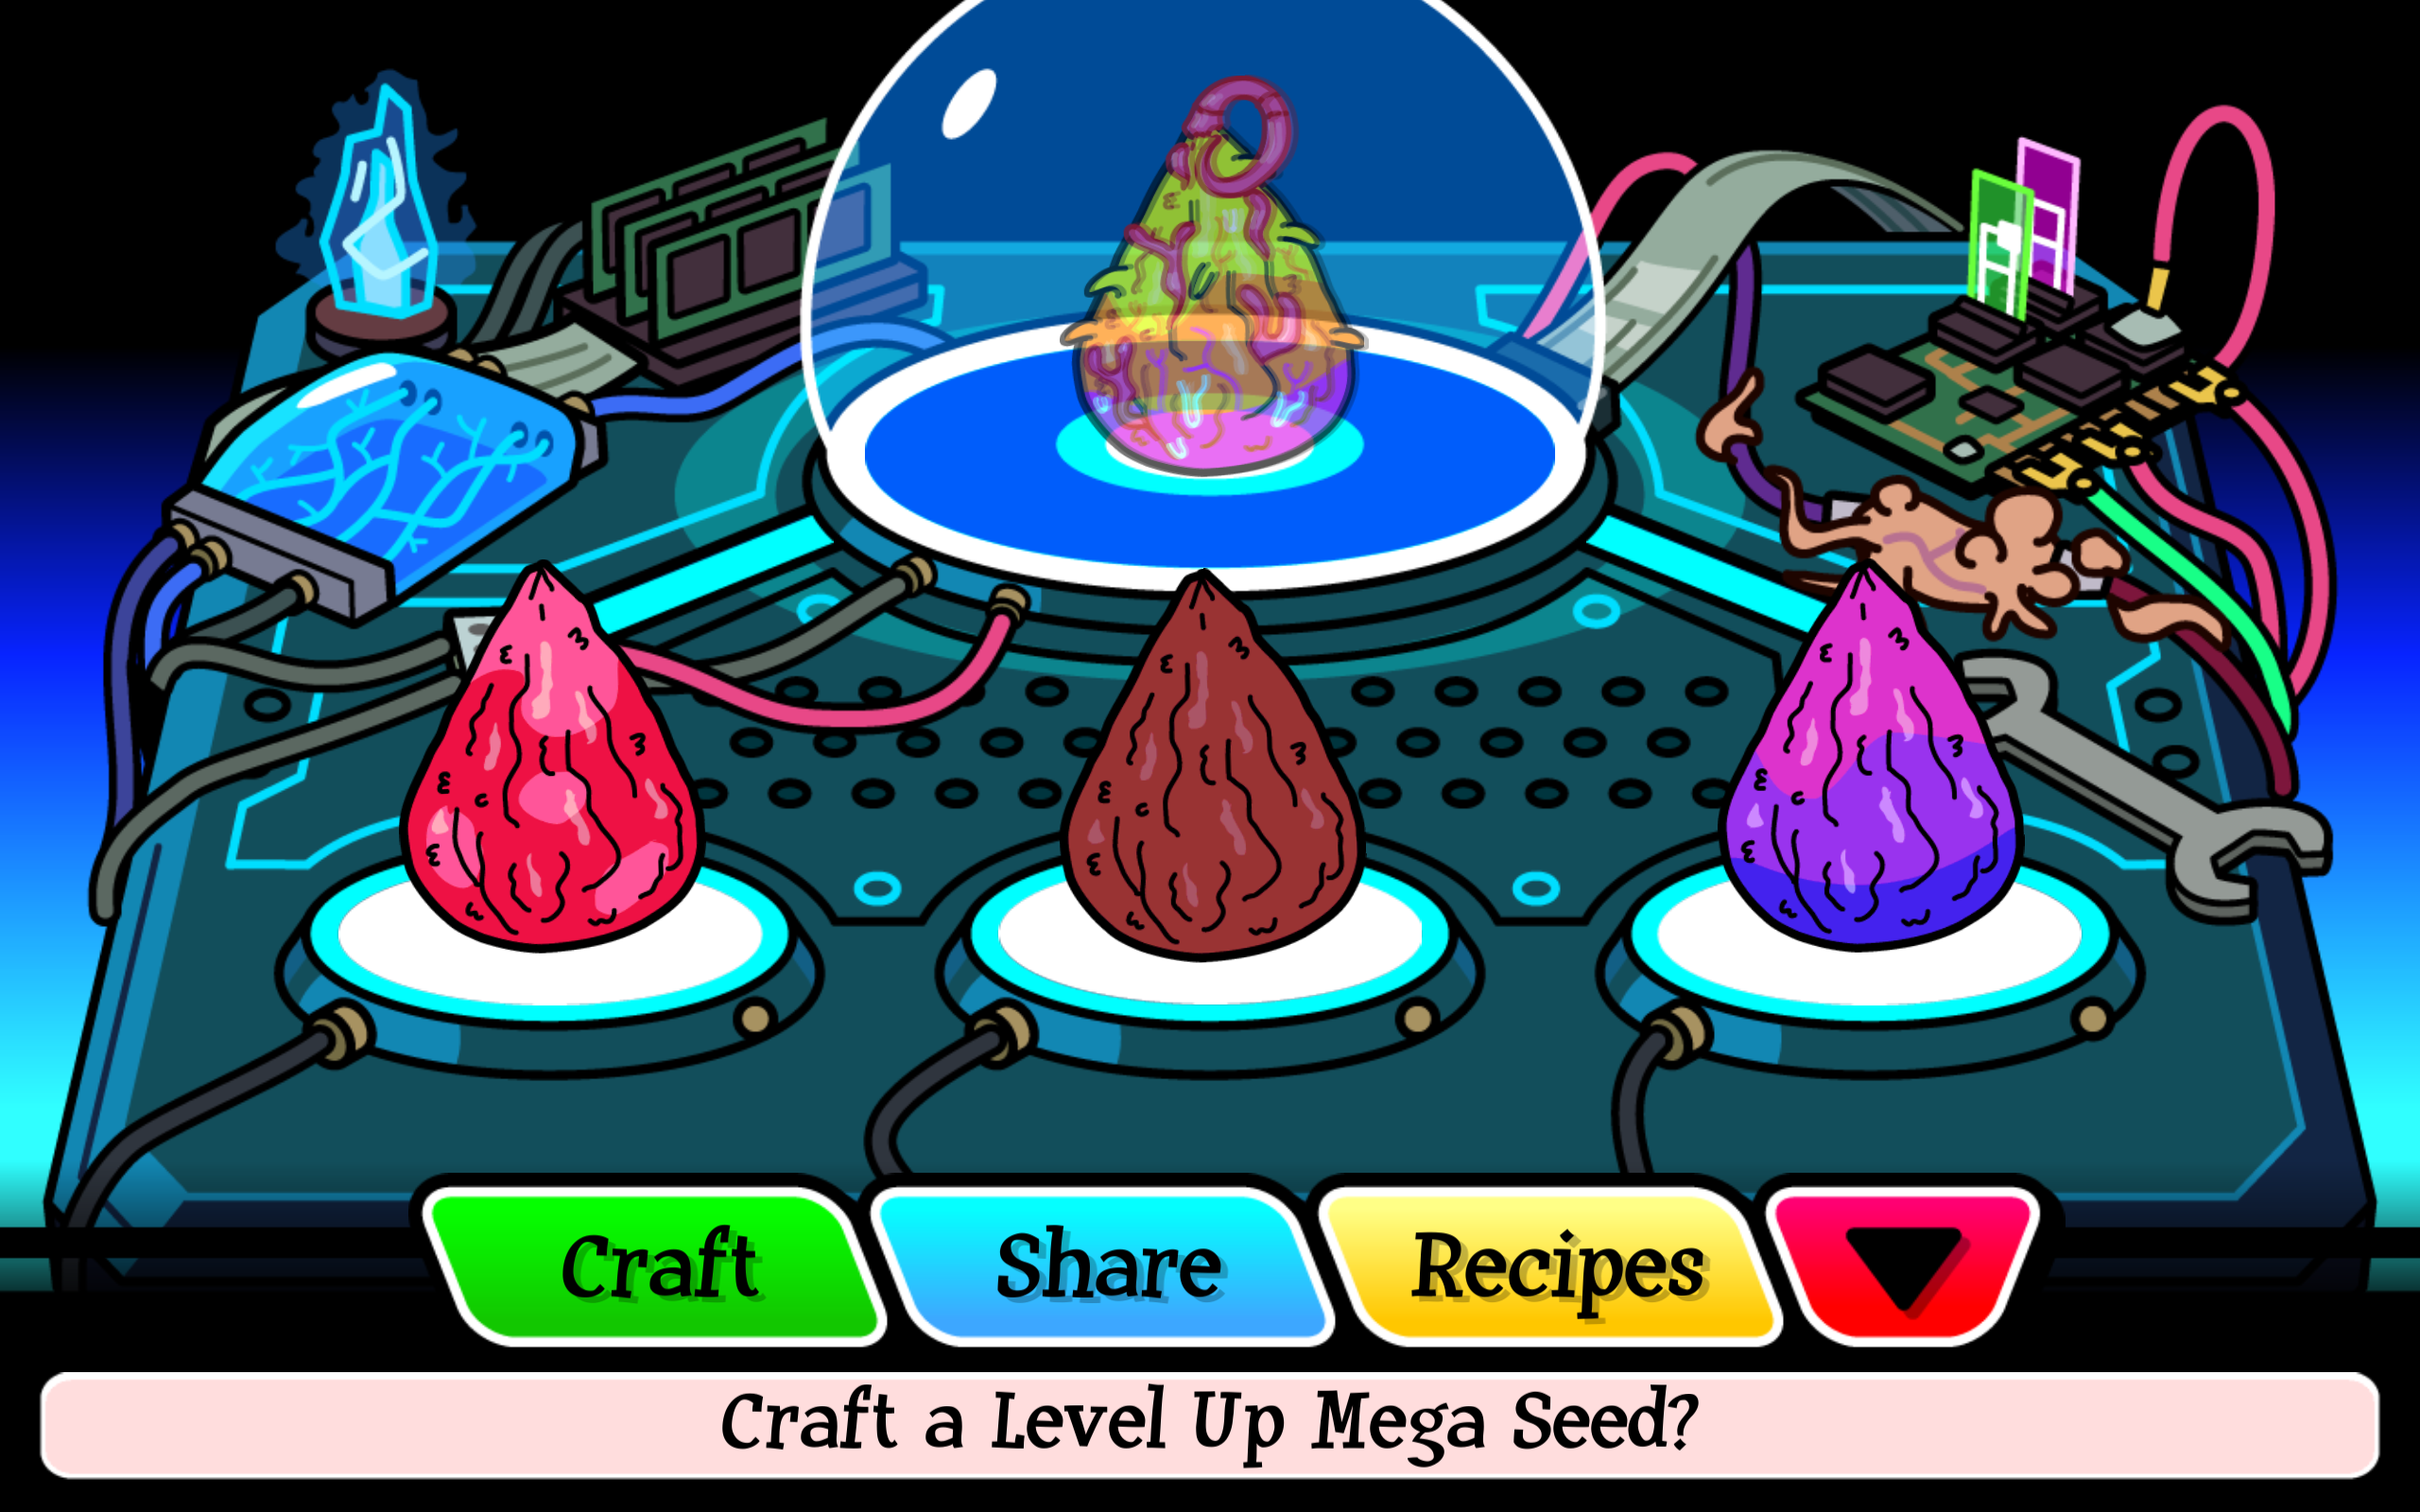 10. Level Up Seed